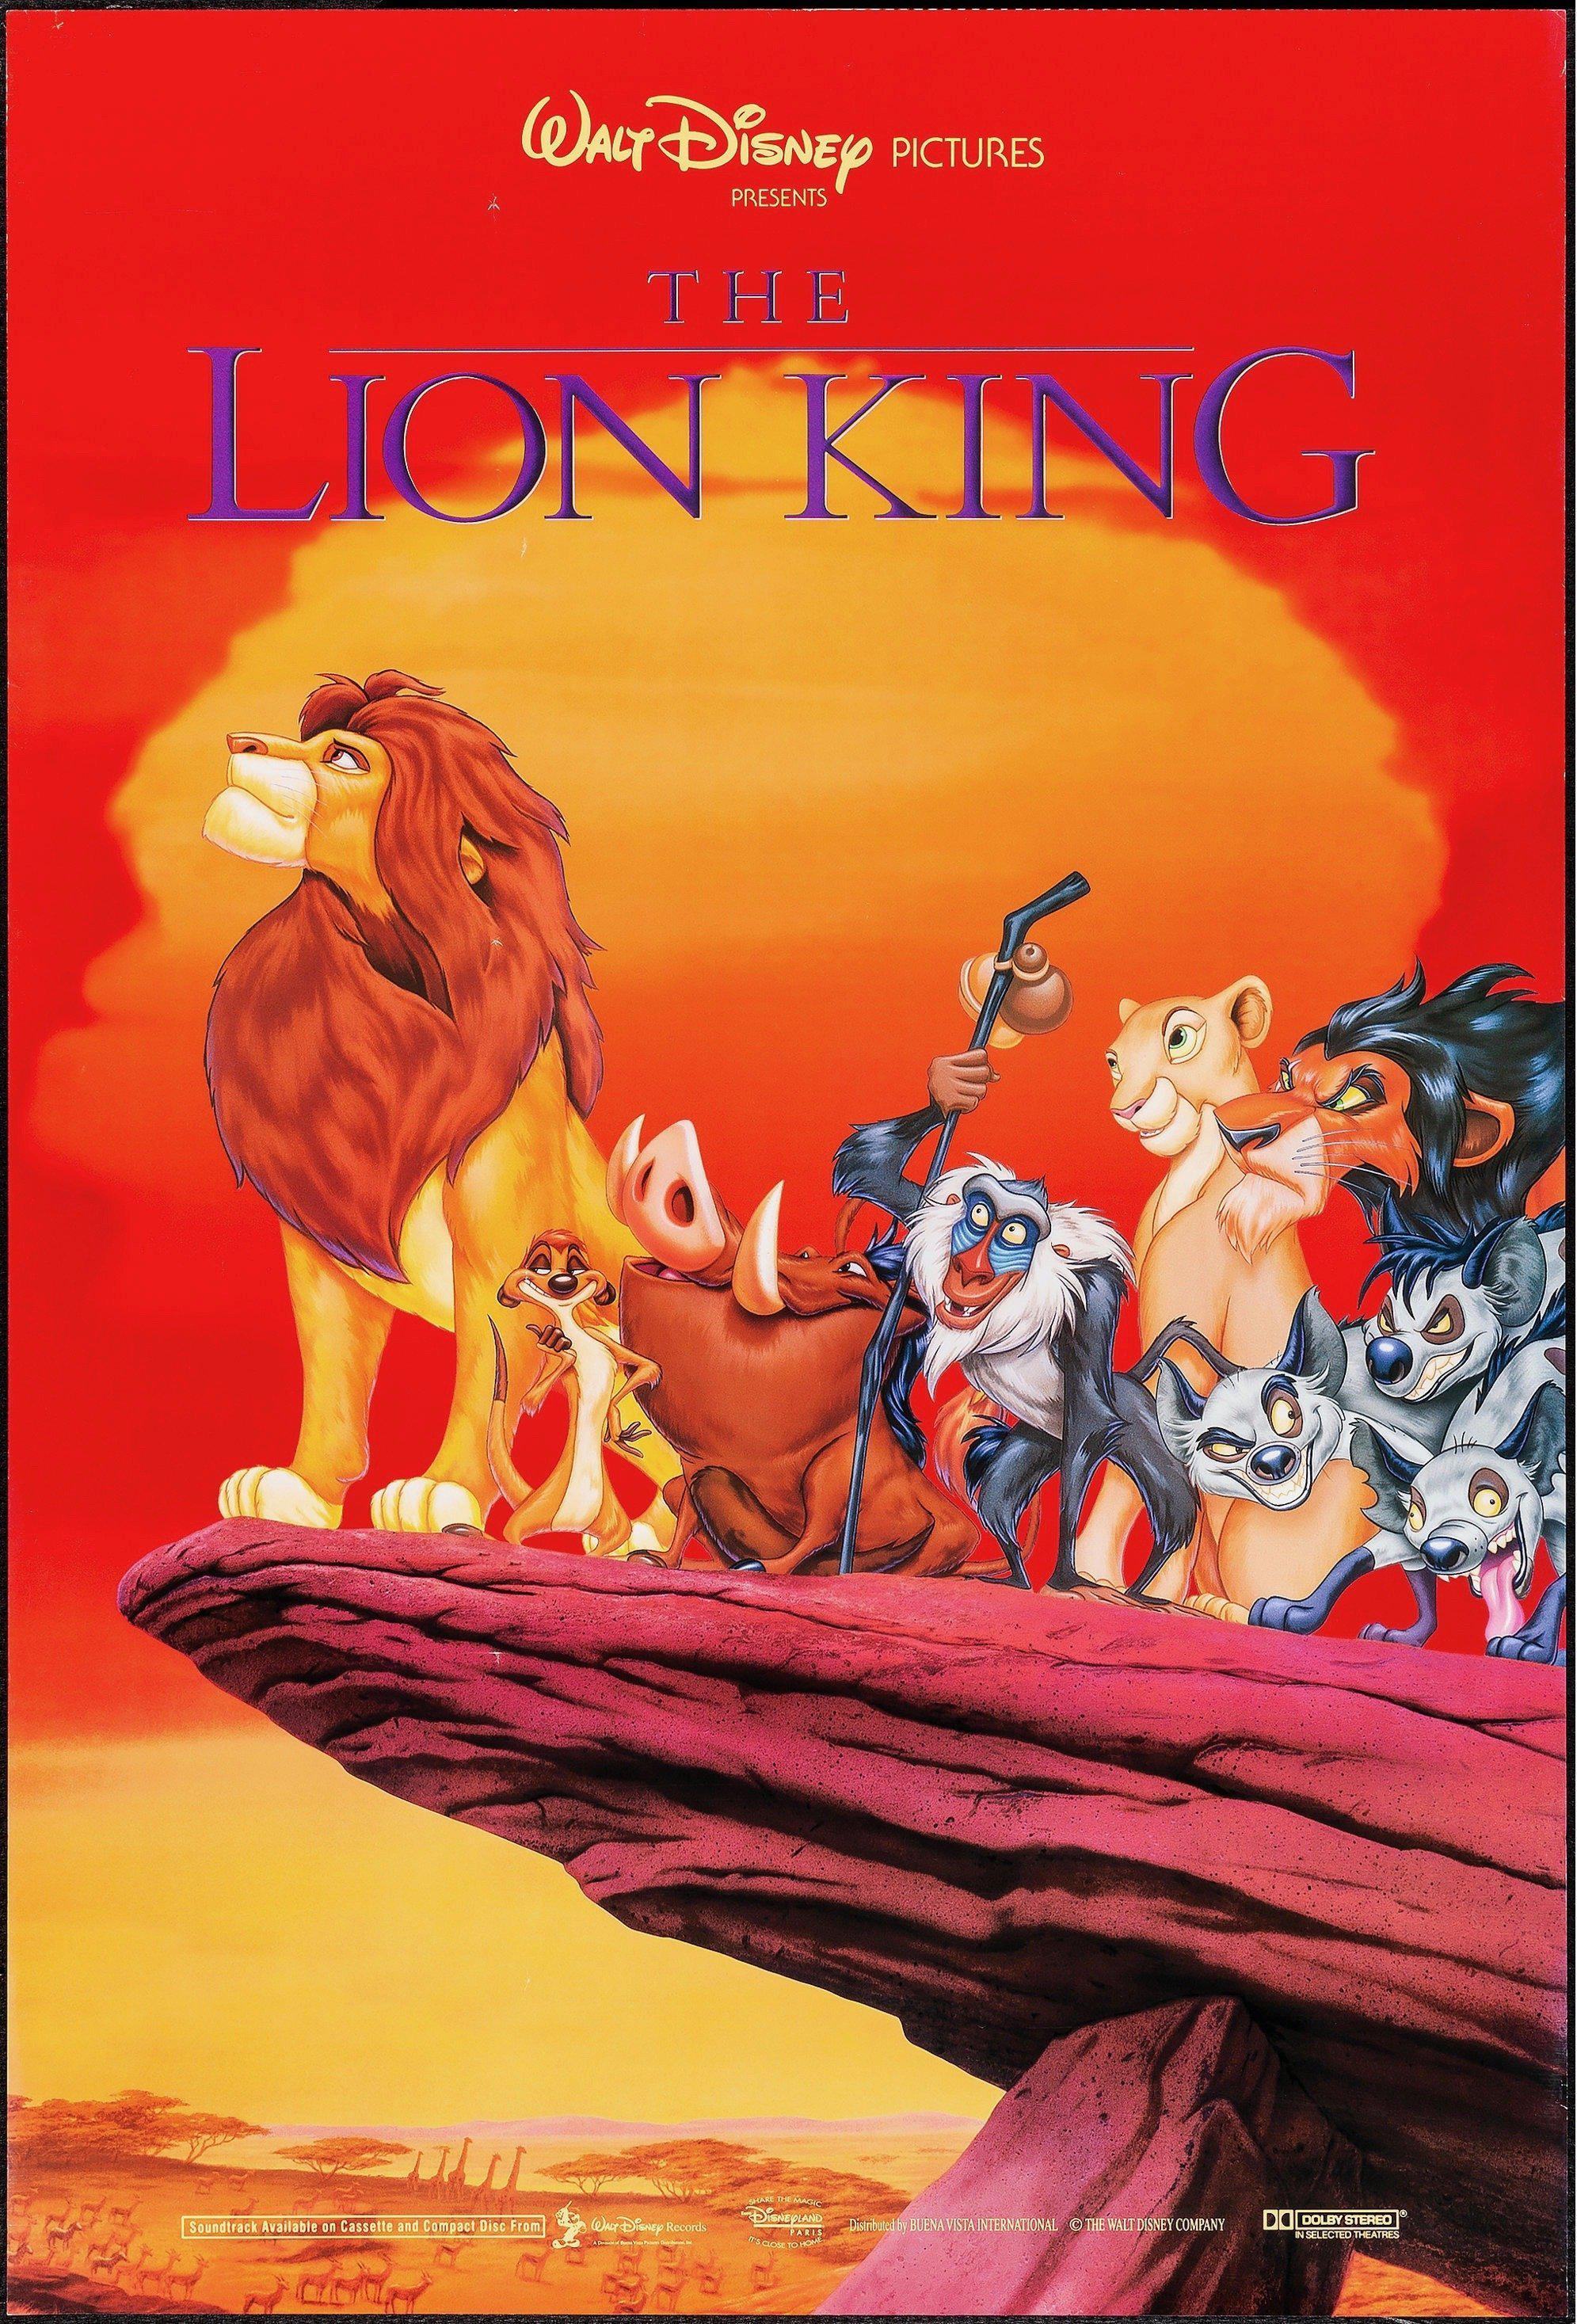 The Lion King 1 Sheet (27x41) Original Vintage Movie Poster